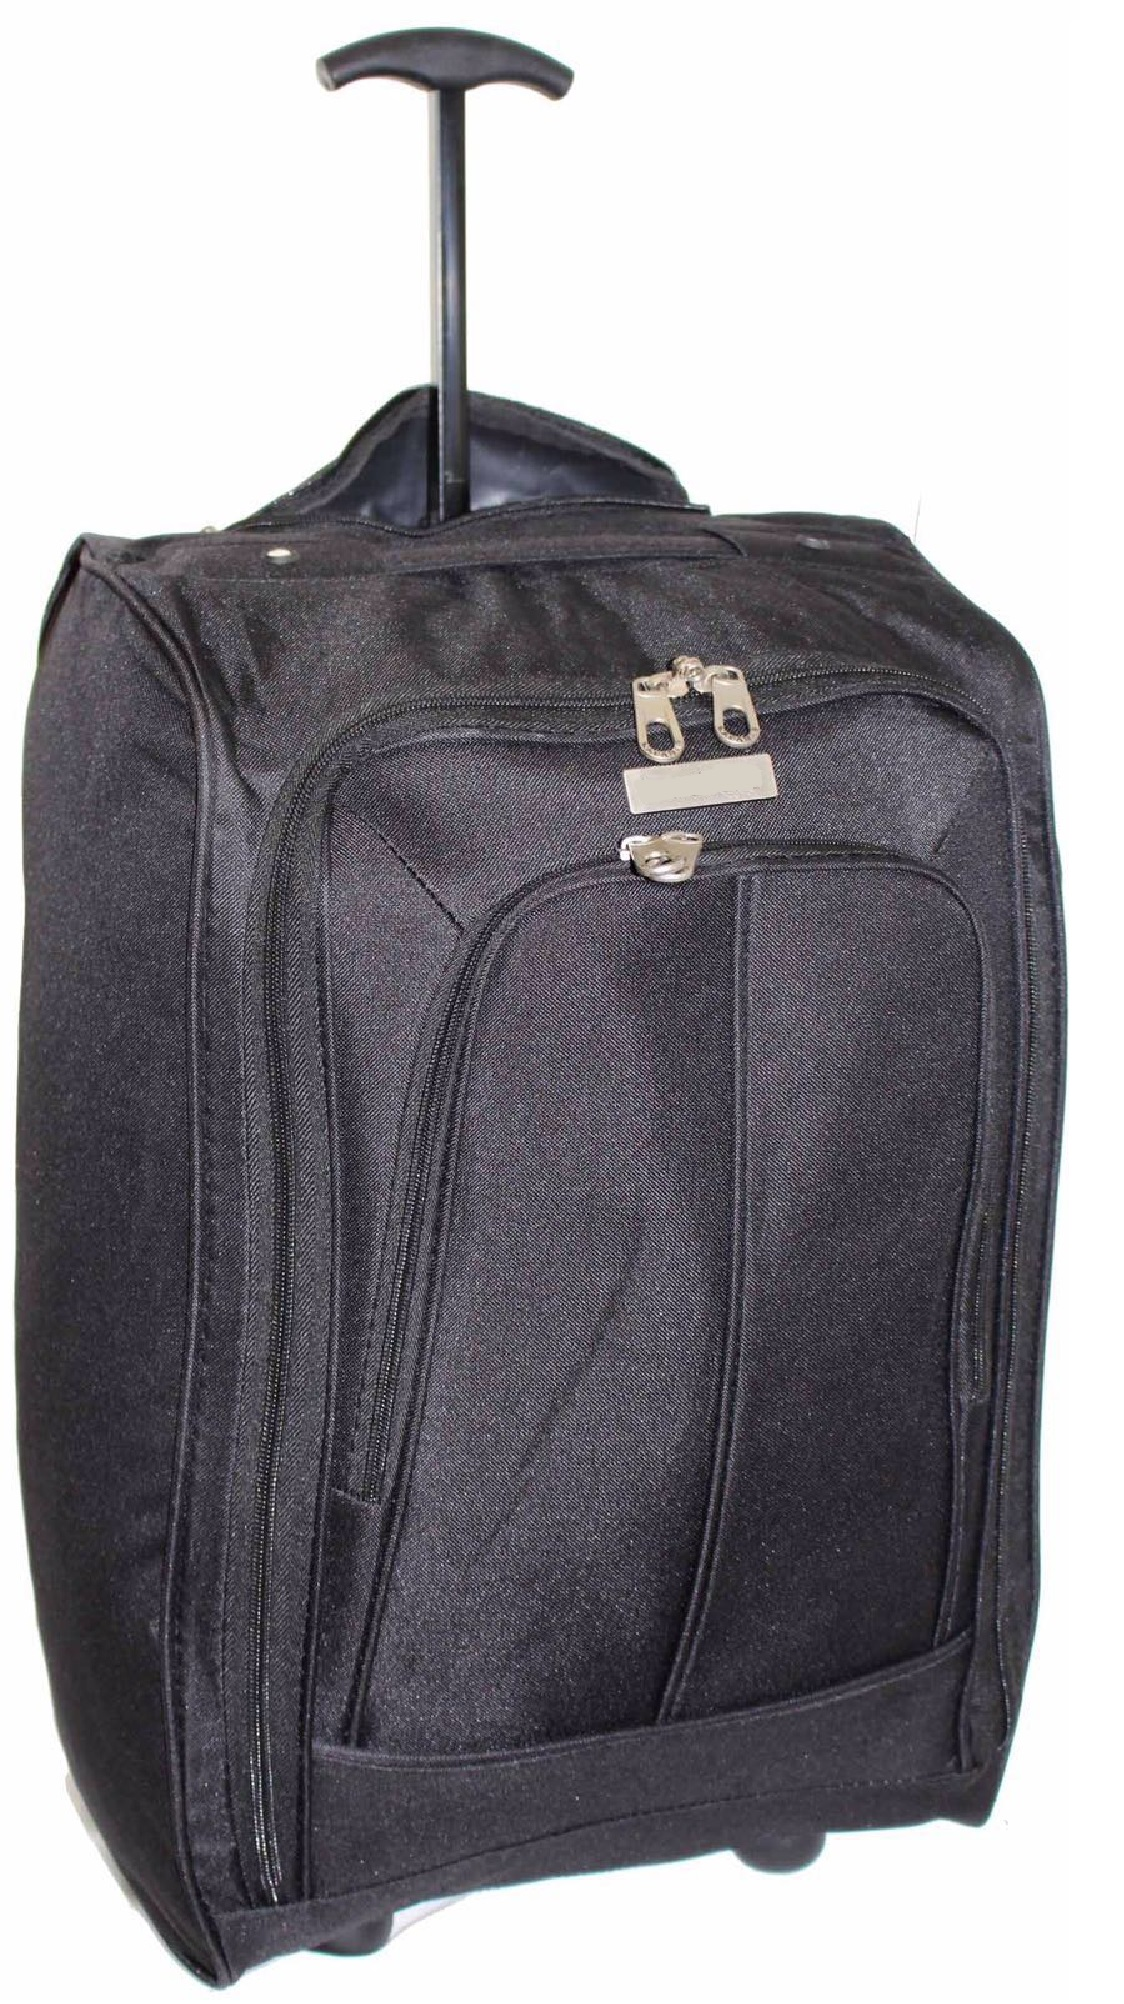 NEW CABIN TRAVEL WHEELED LIGHTWEIGHT BAG HAND LUGGAGE ...